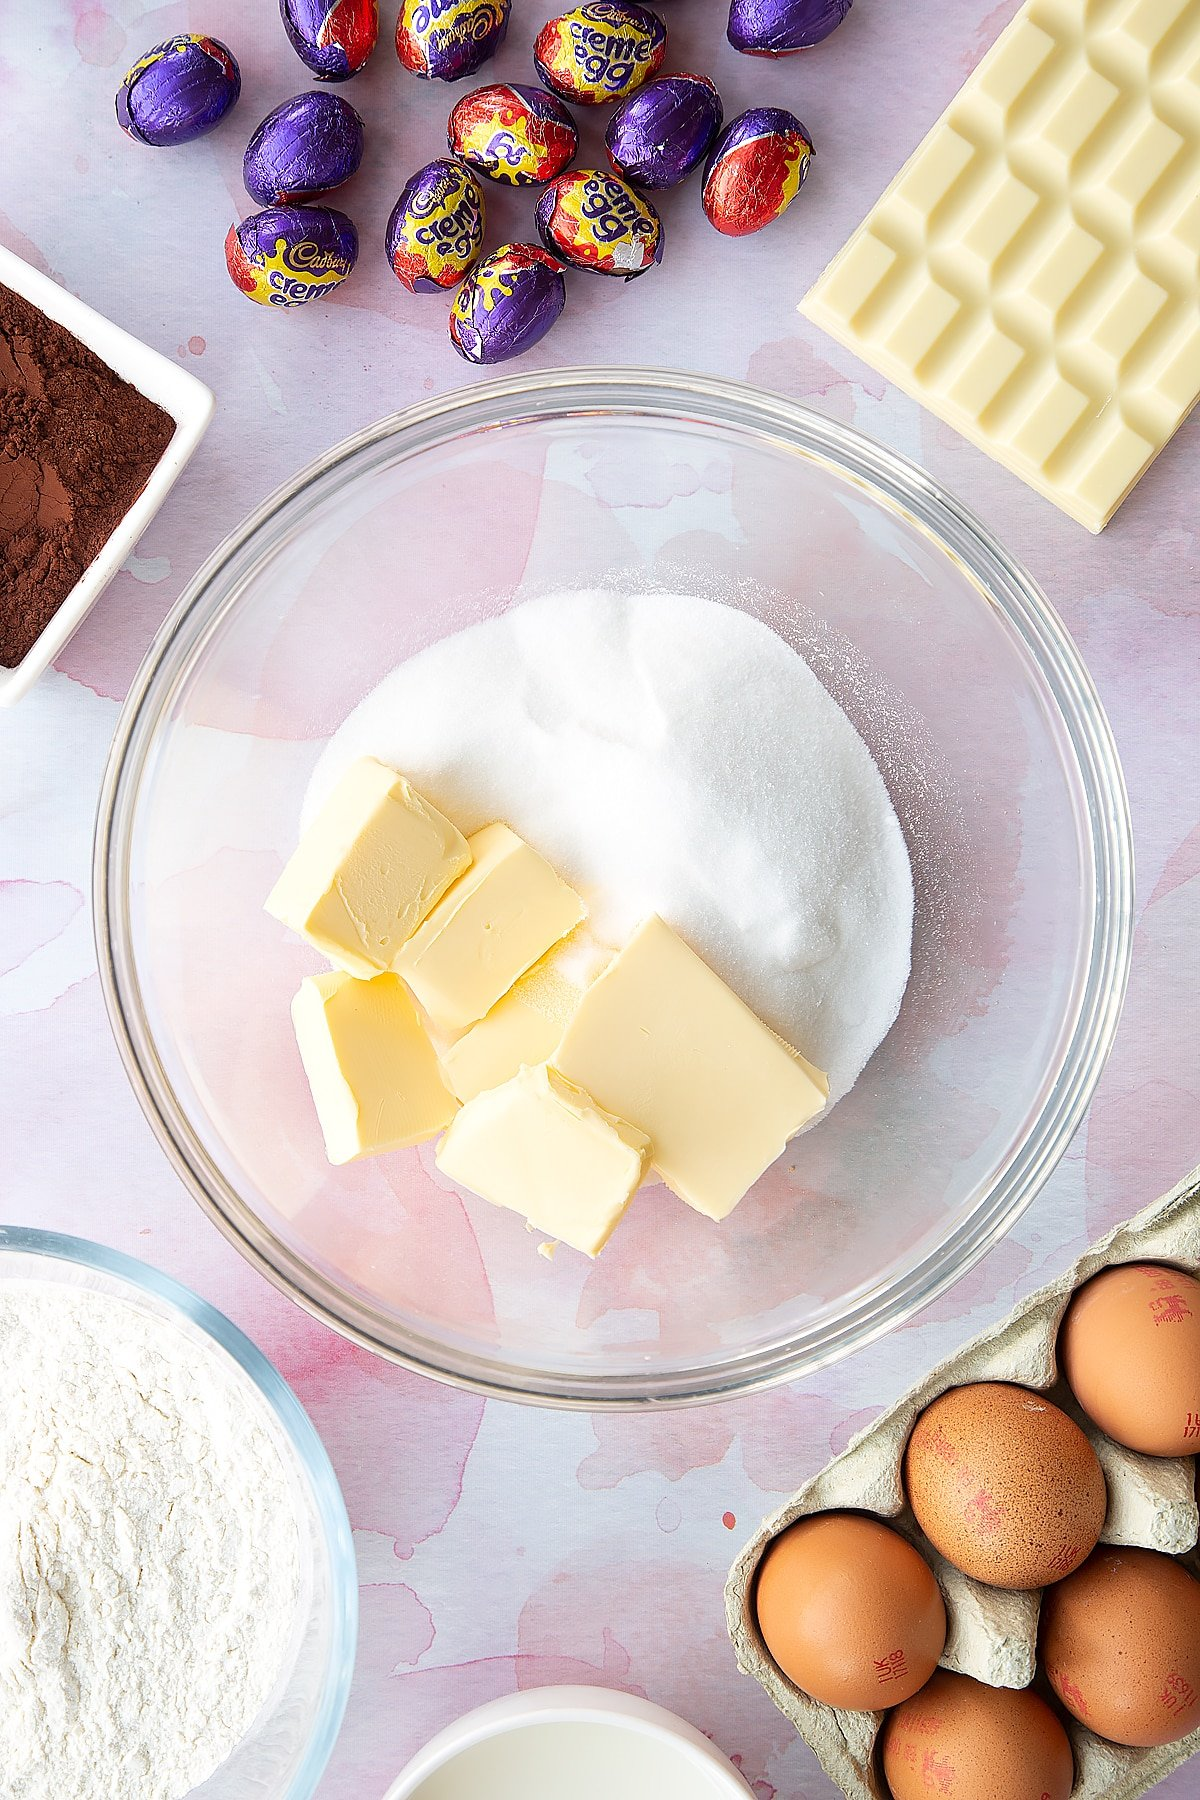 Butter and sugar in a bowl. Ingredients to make Cadbury Creme Egg cakes surround the bowl.